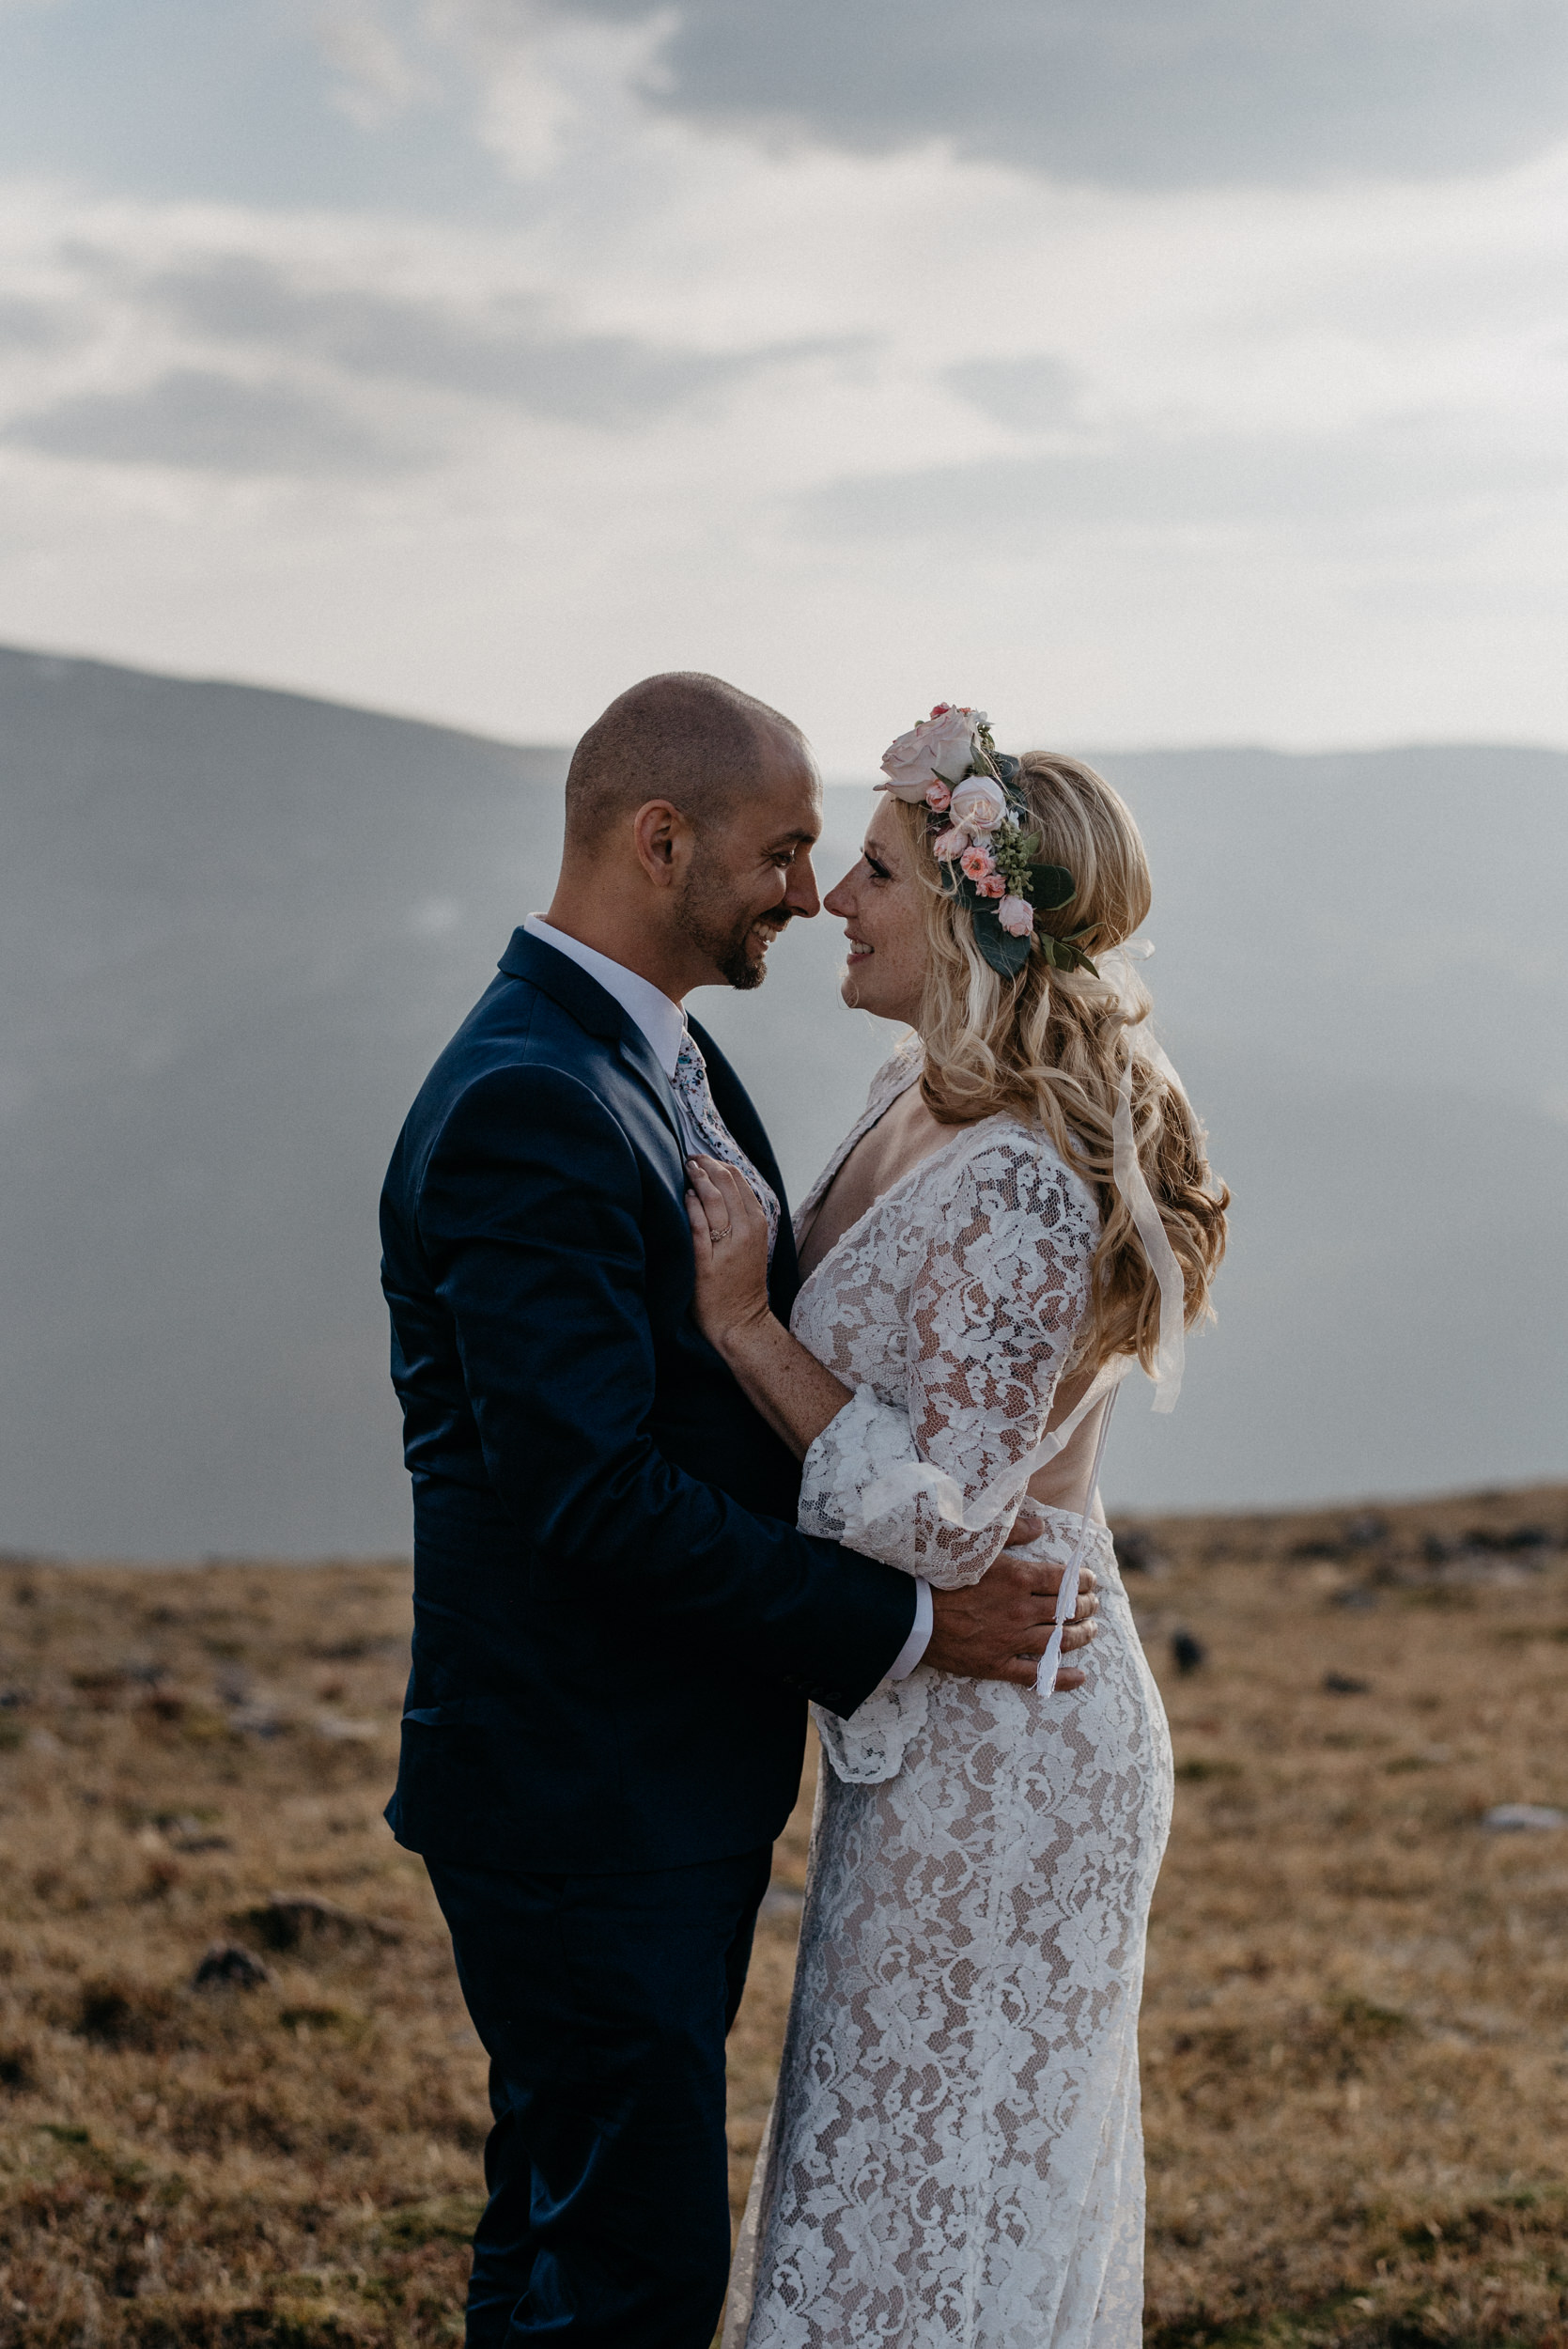 Trail Ridge Road elopement photos in Rocky Mountain National Park.